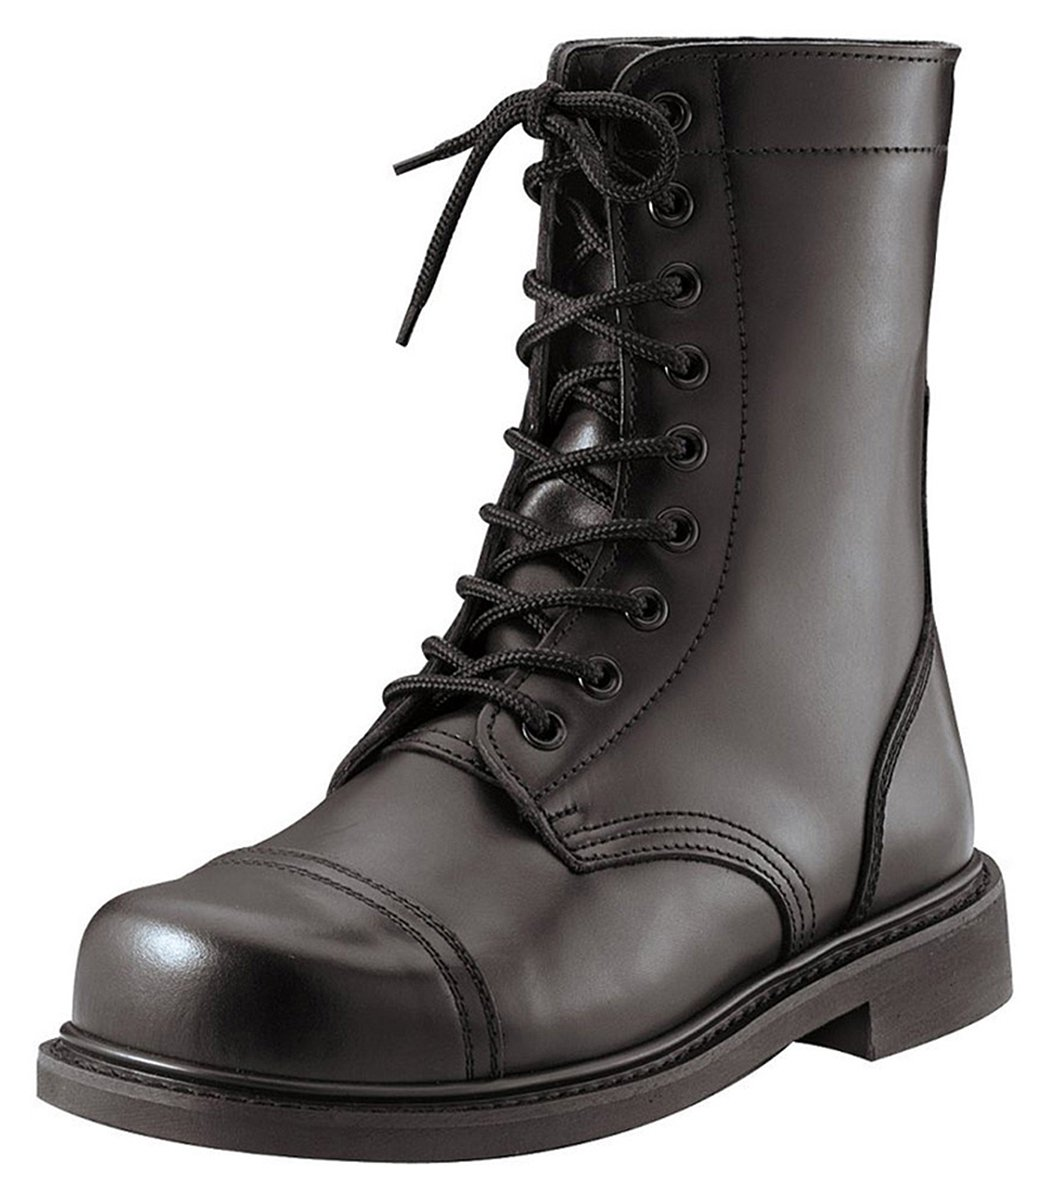 Rothco 9'' Steel Toe Combat Boot B000E1VHAC 9|Black